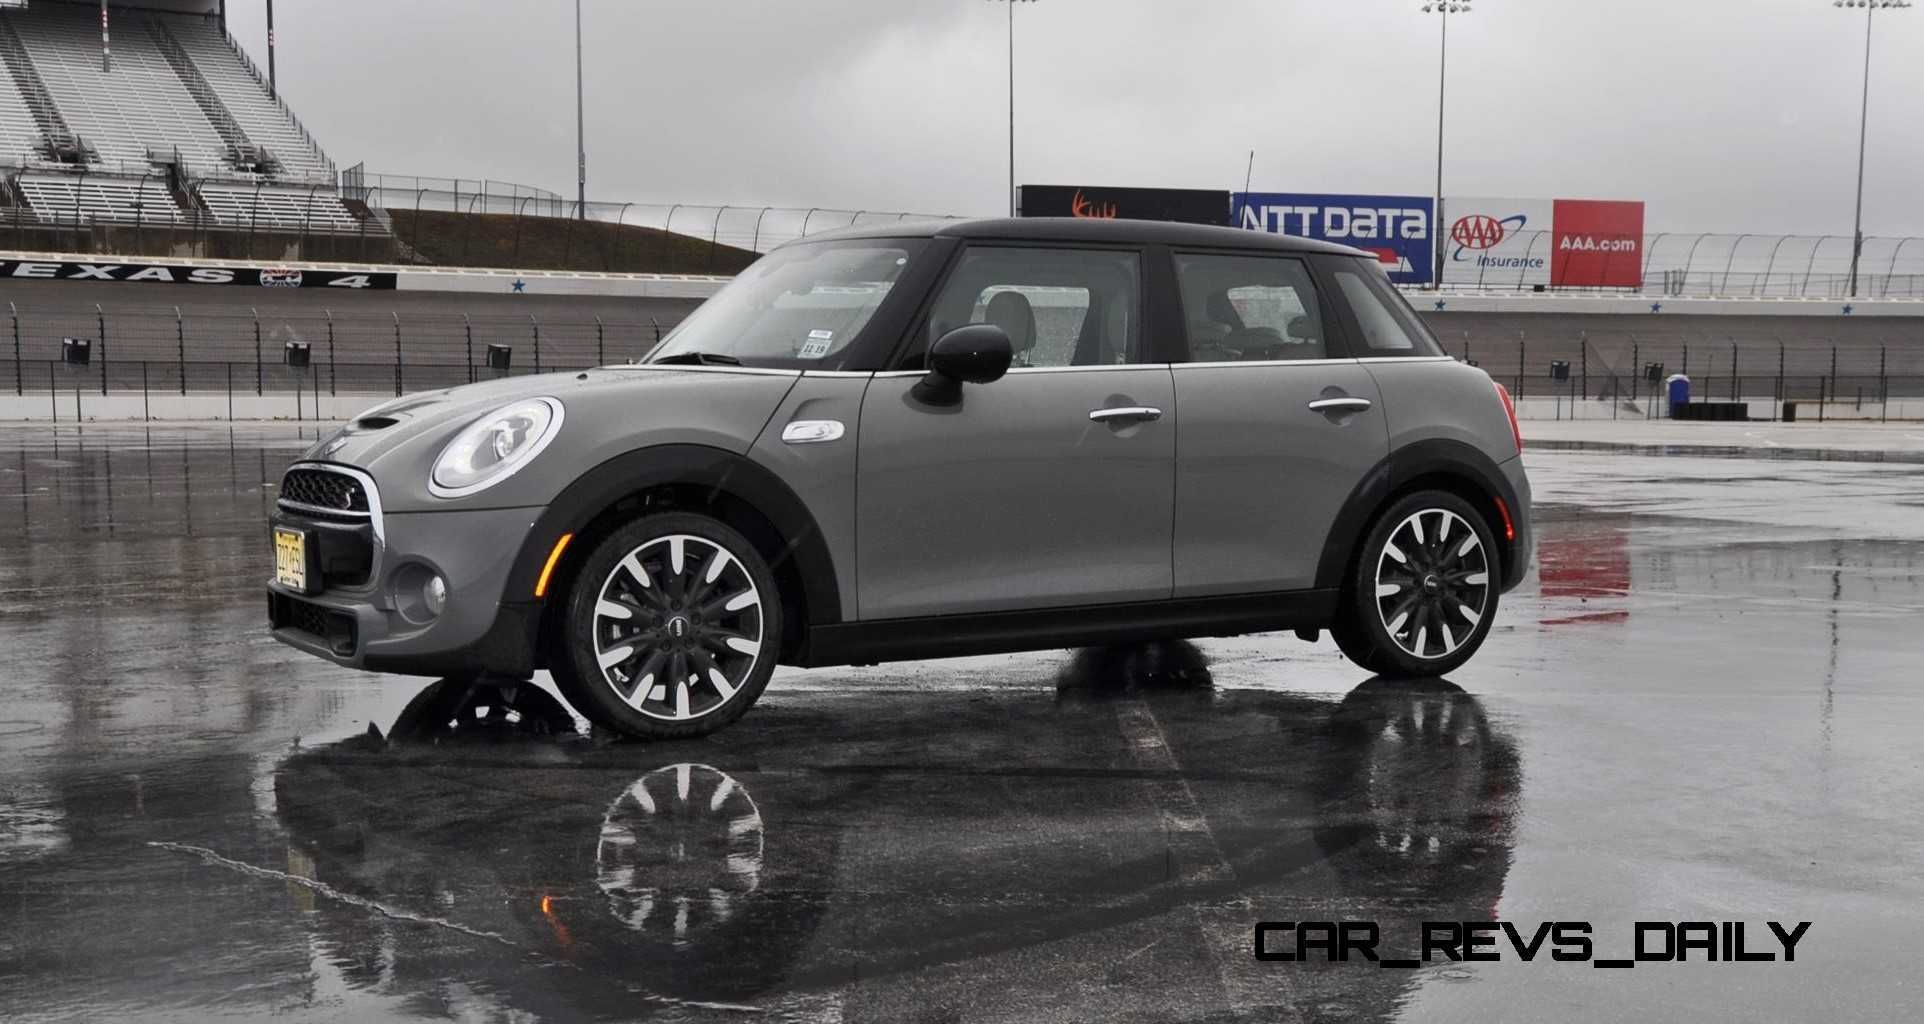 Best 25+ Mini cooper 4 door ideas on Pinterest | Used mini countryman Mini cooper hardtop and New mini countryman & Best 25+ Mini cooper 4 door ideas on Pinterest | Used mini ... Pezcame.Com